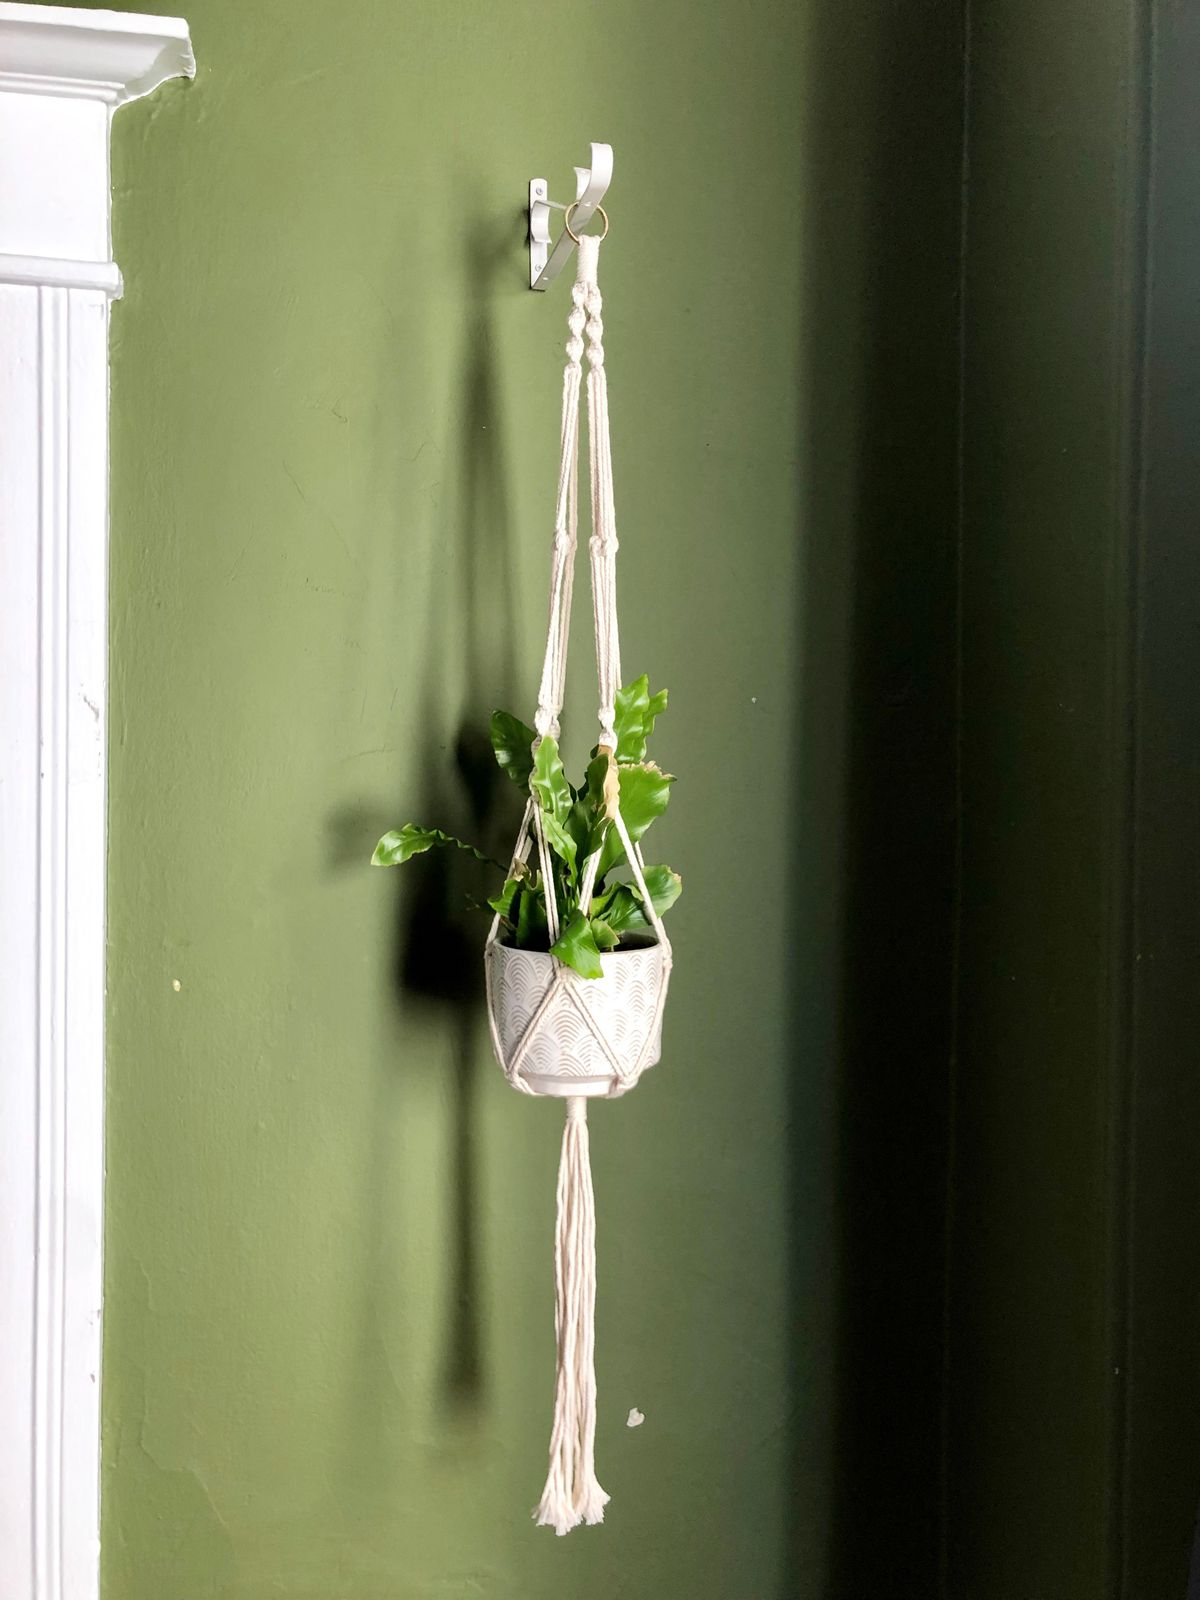 A white braid of macrame hold a green fern in a potted plant, held high against a dark green wall.